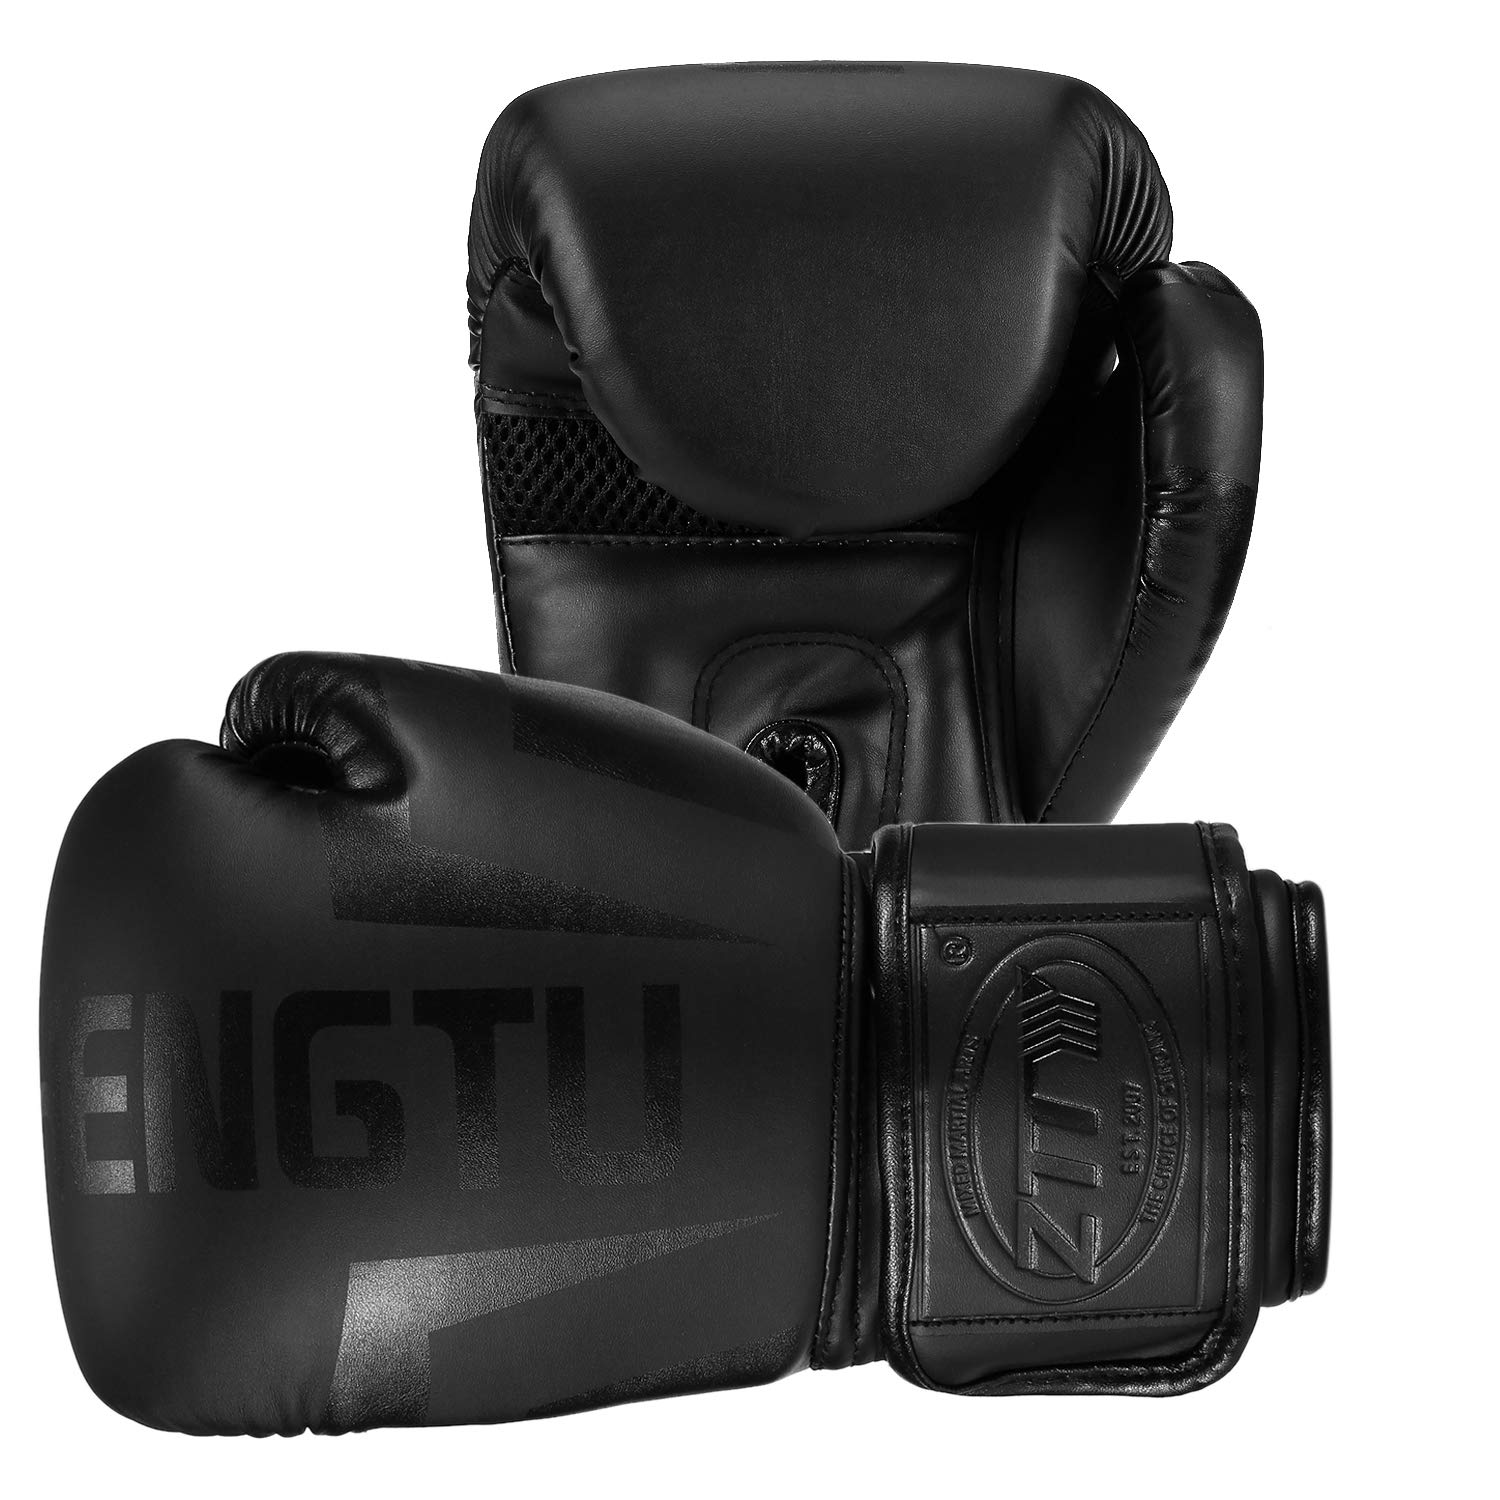 ZTTY Sports Boxing Gloves